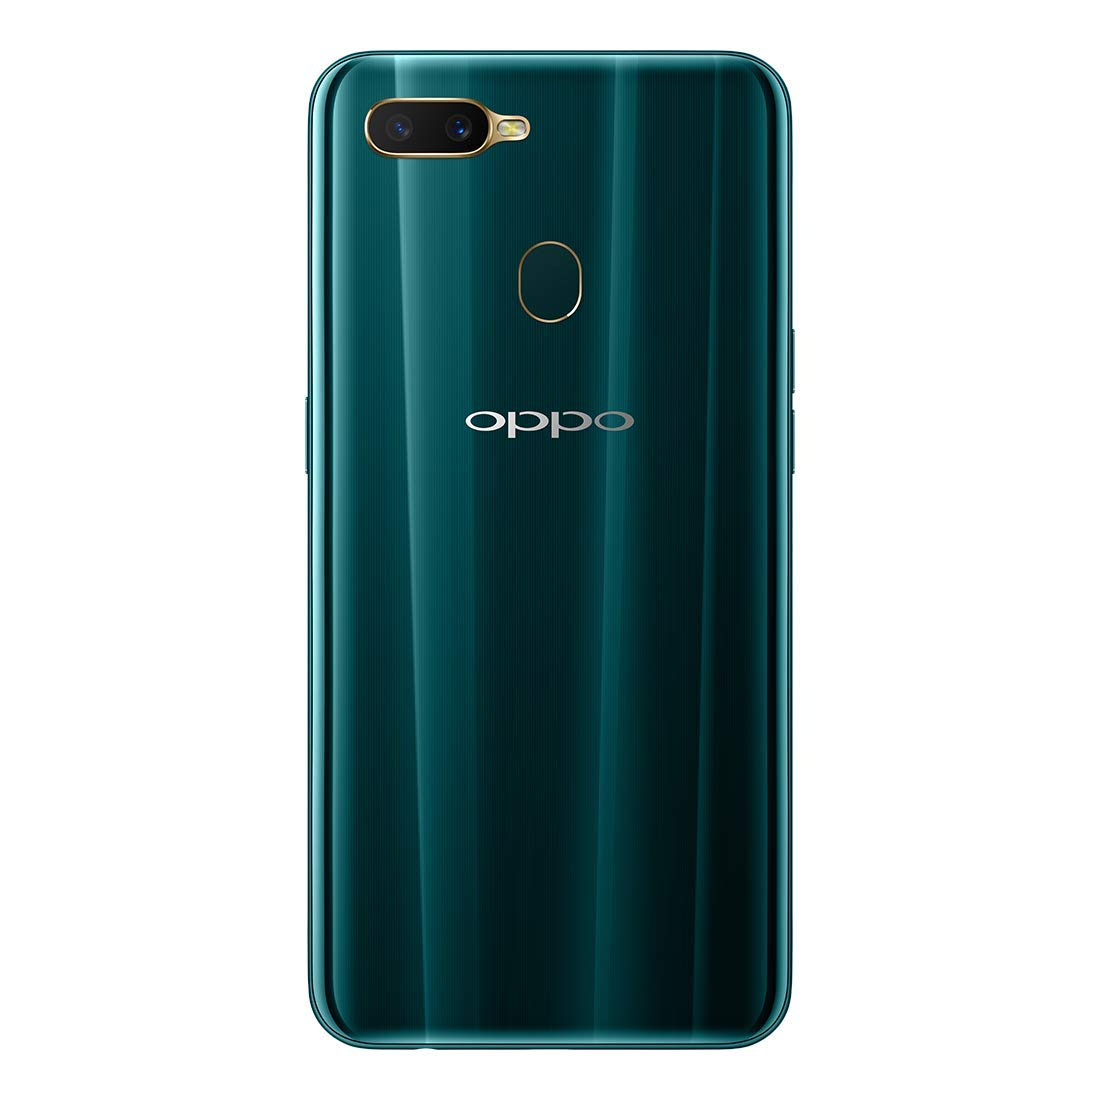 OPPO A7 (Glaze Blue, 4GB RAM, 64GB Storage) with No Cost EMI/Additional  Exchange Offers